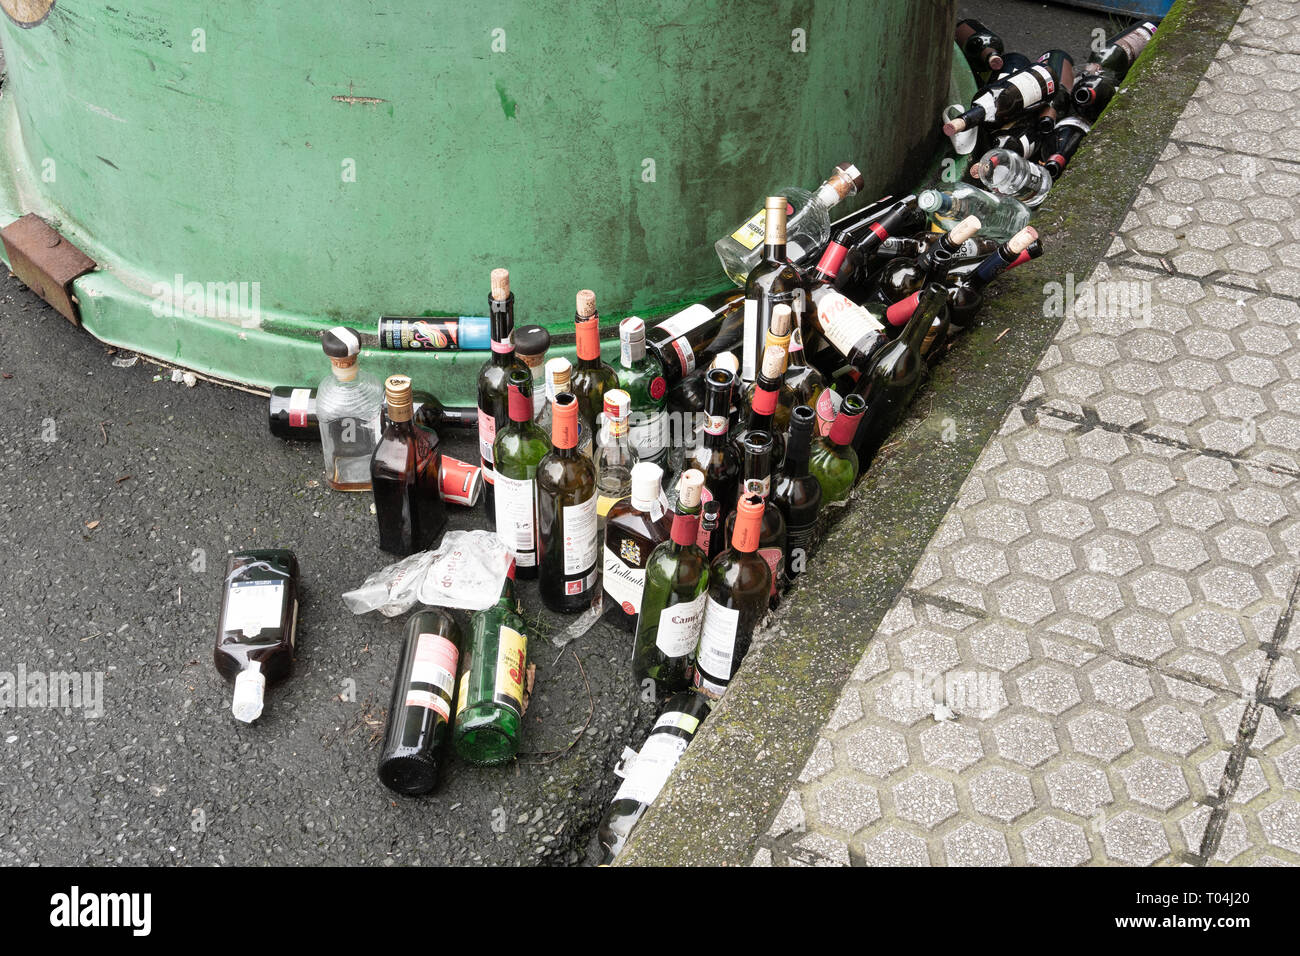 Galicia, Spain; march 8 2019: Lots of empty glass bottles near a glass container. Recycling concept - Stock Image